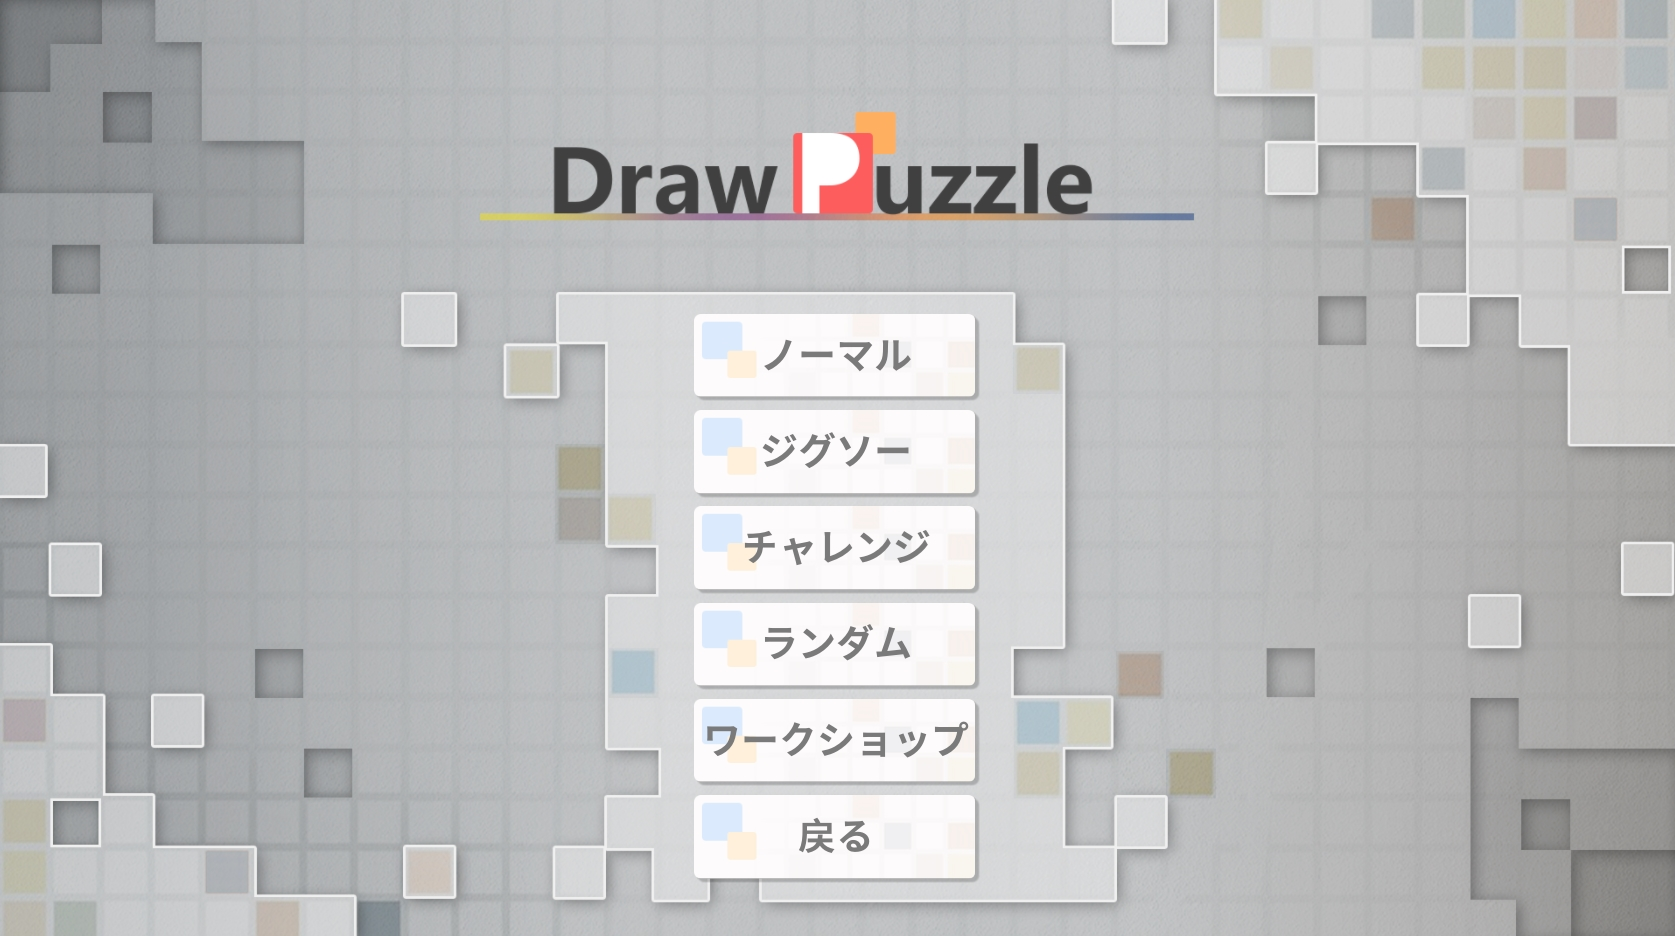 Game modes in Japanese